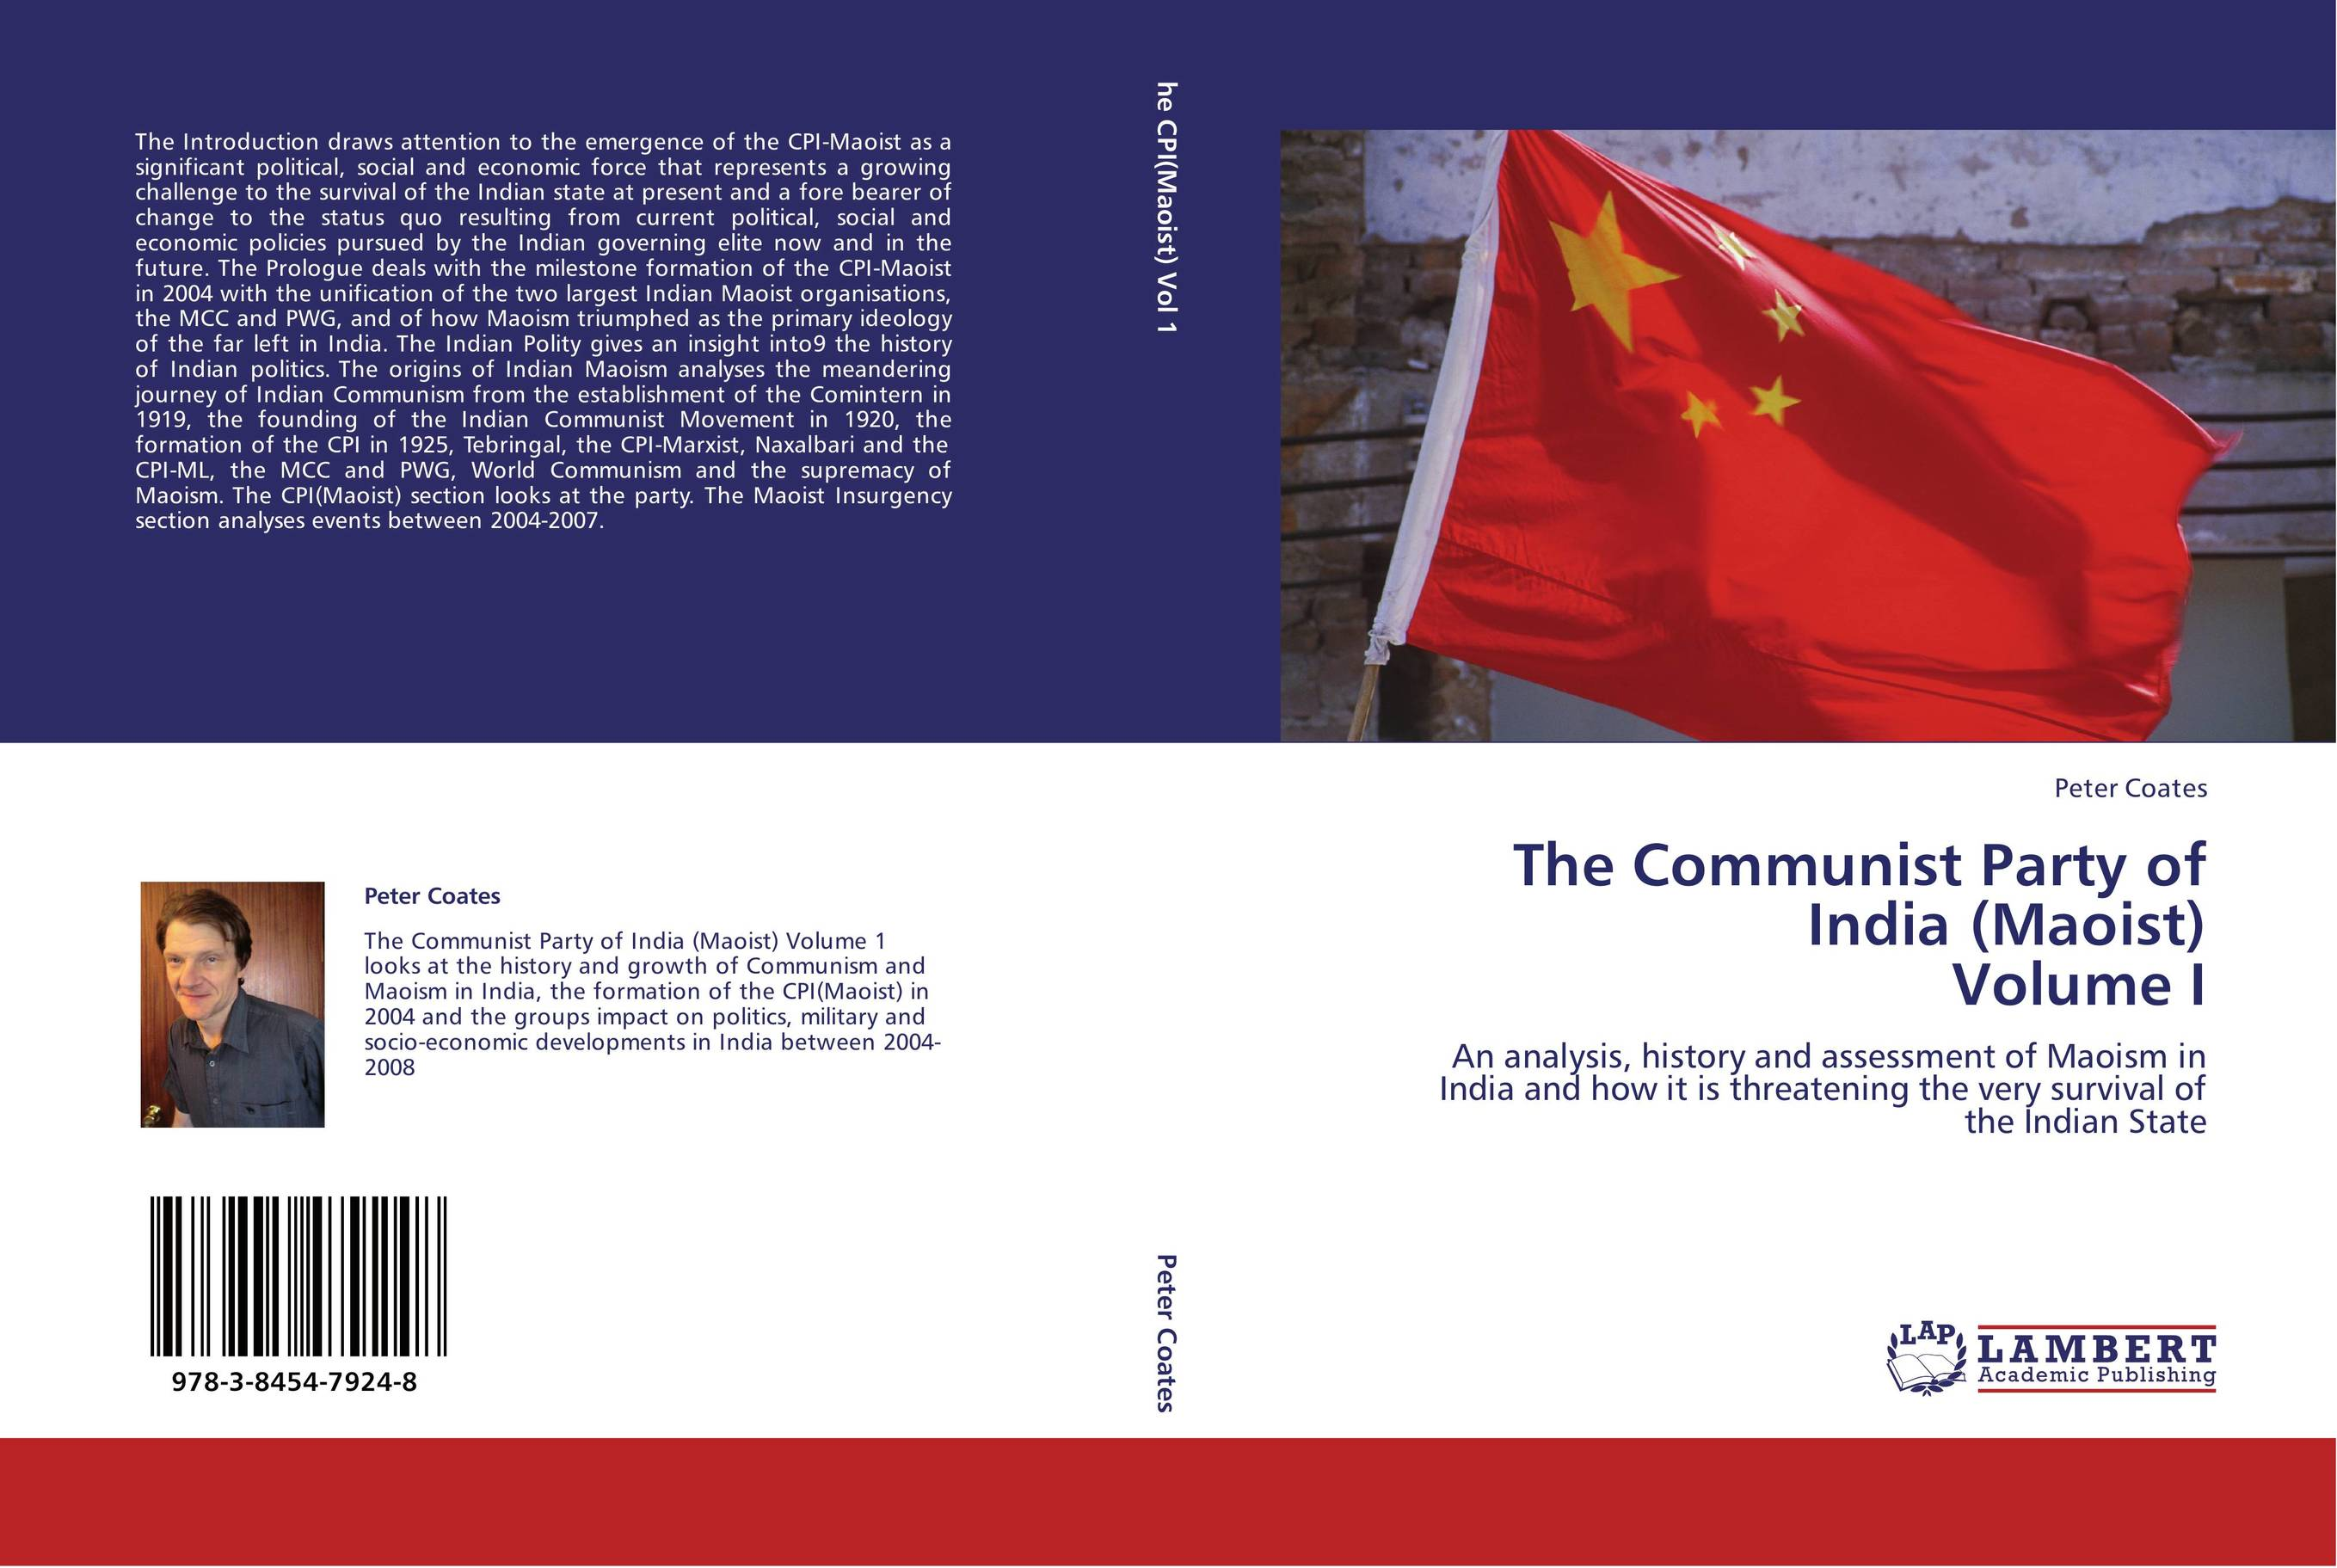 the rise of communalism in india Guwahati, main uddin: normally, the question comes from concern indian citizens as well as indian systematizers, what are the root causes for the rise of communalism in india.